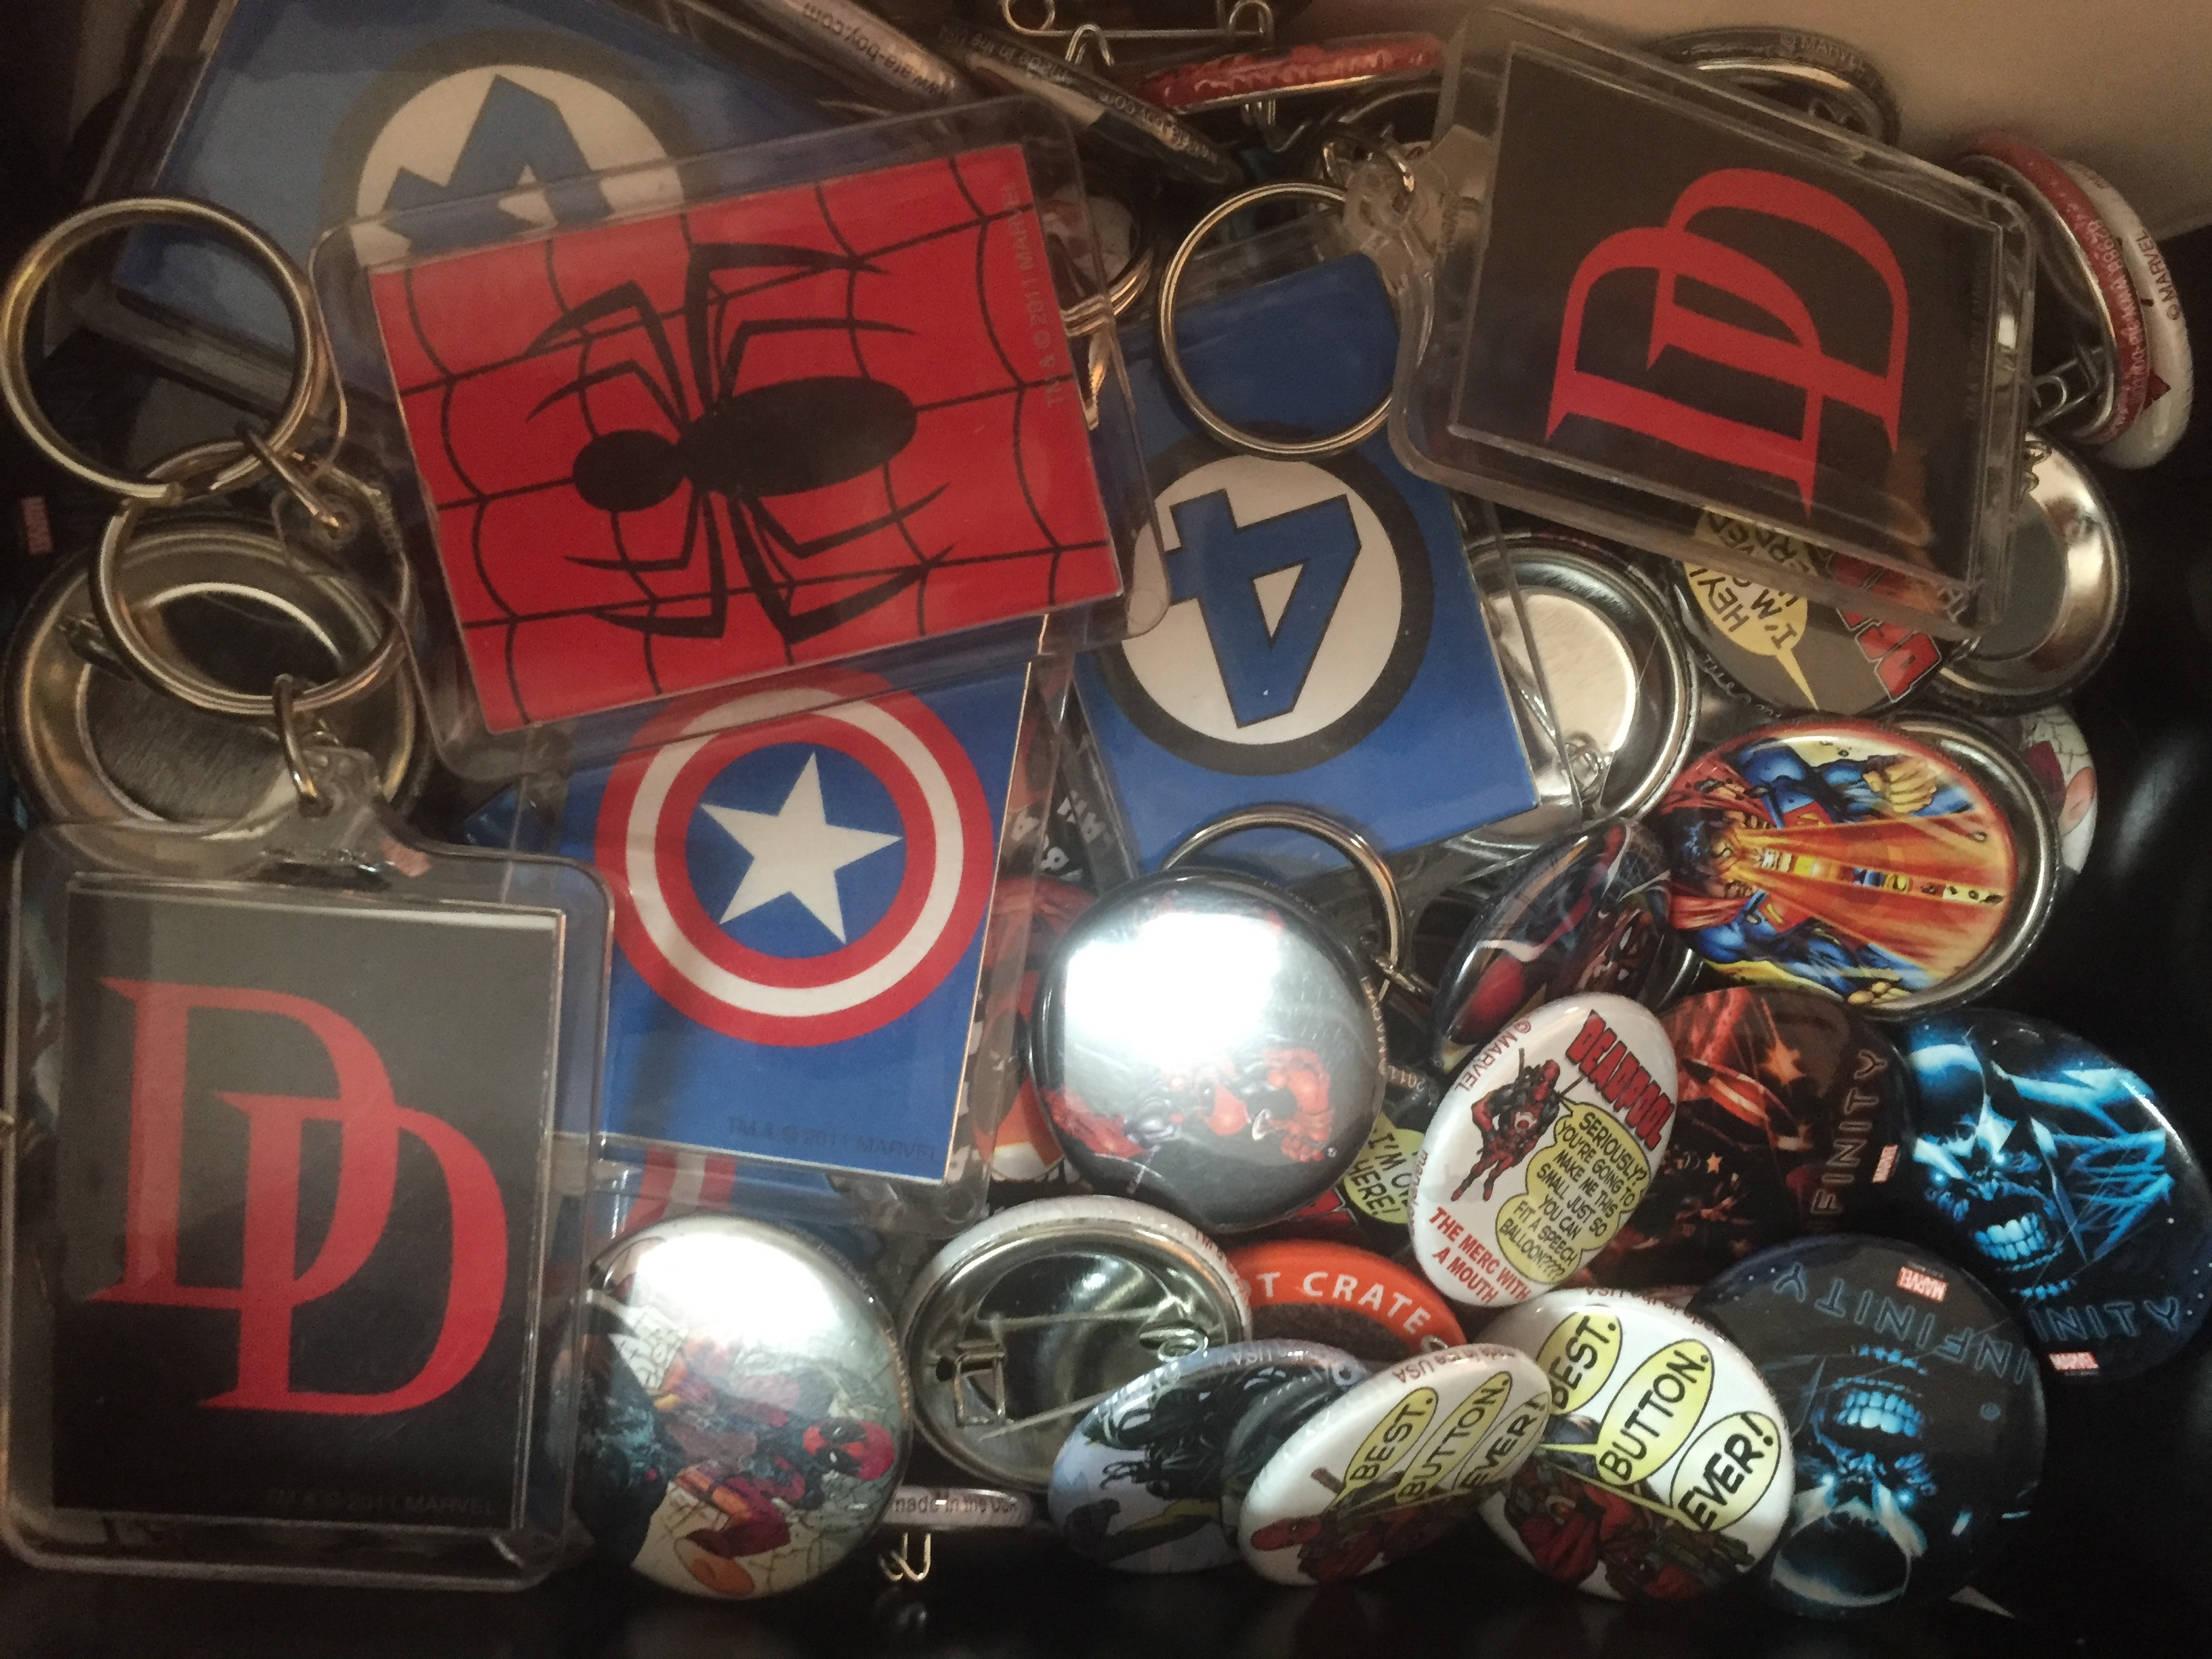 "<span  class=""uc_style_uc_tiles_grid_image_elementor_uc_items_attribute_title"" style=""color:#ffffff;"">Comic Book Buttons and Keychains</span>"